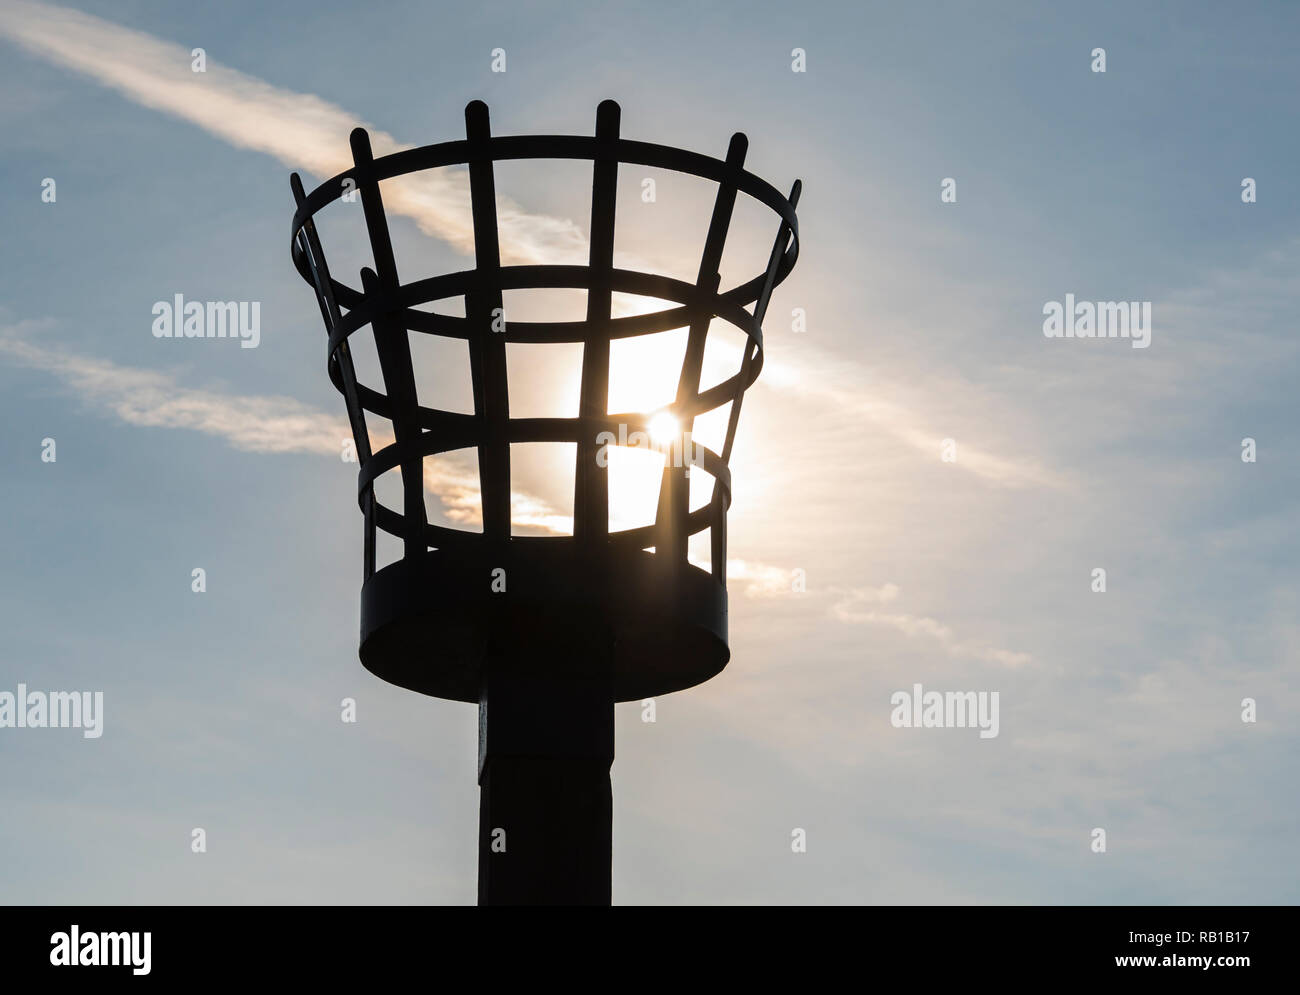 Sun shining through a beacon brazier by the coast in the UK. - Stock Image